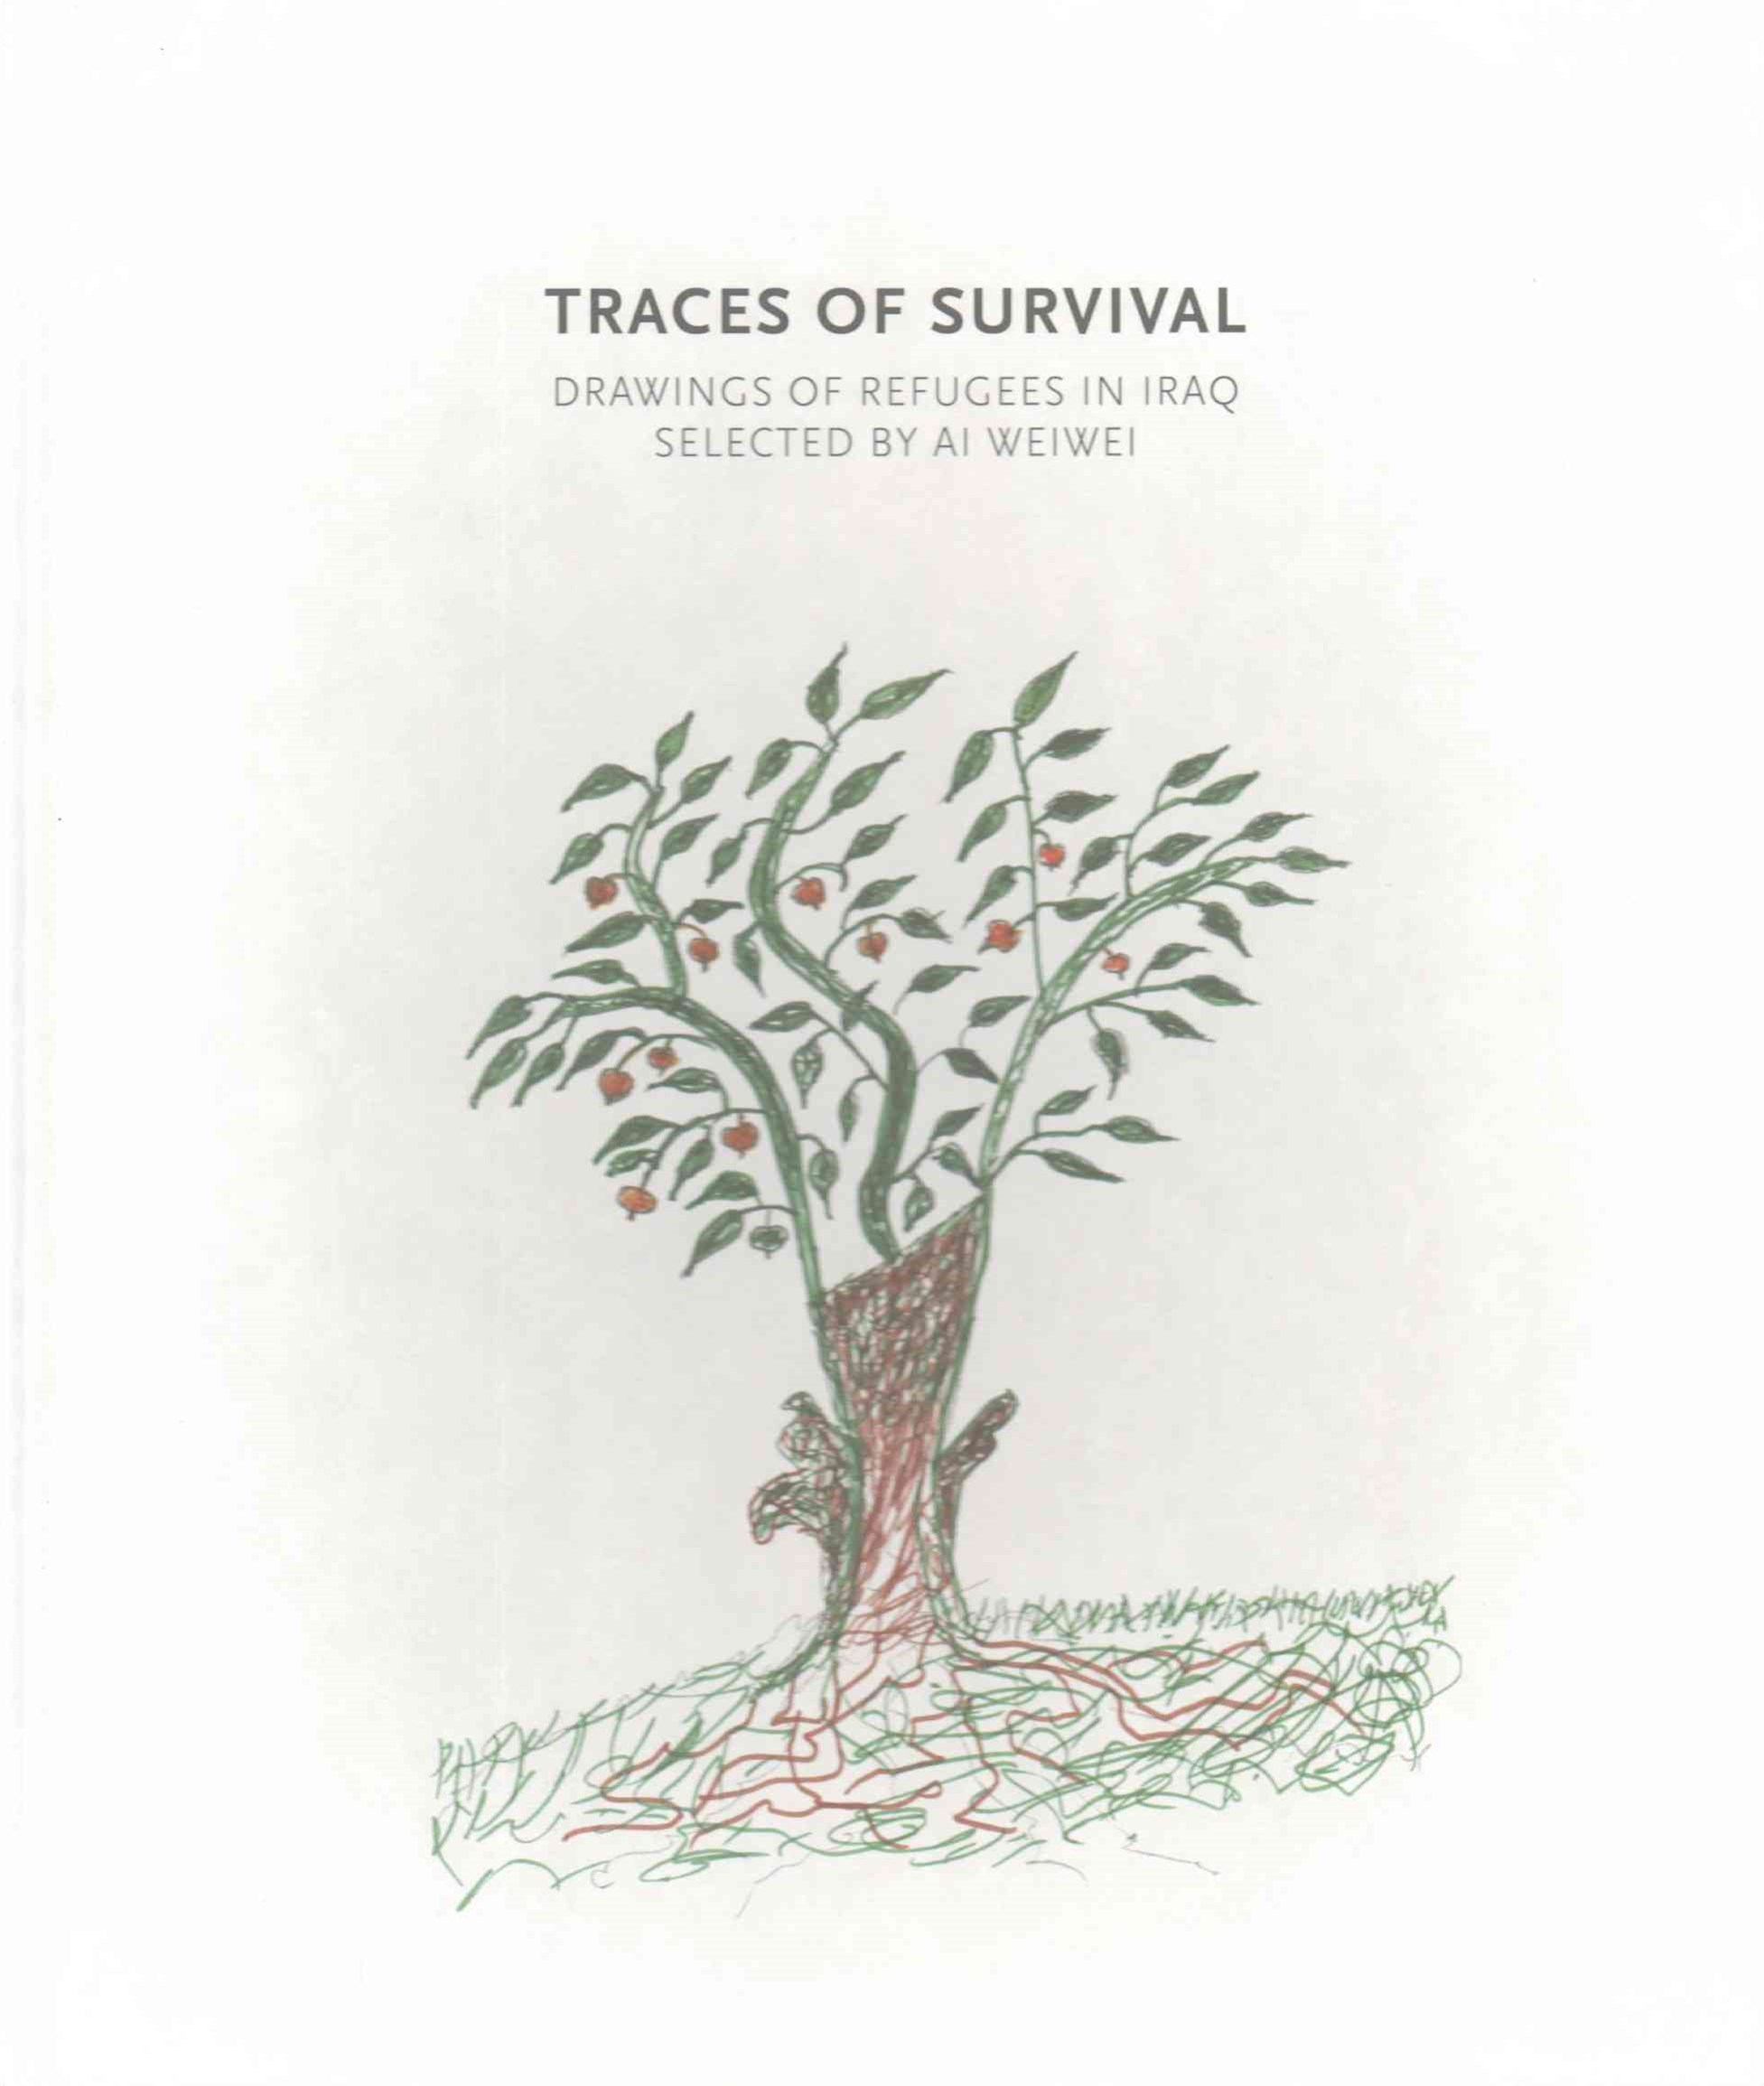 Traces of Survival